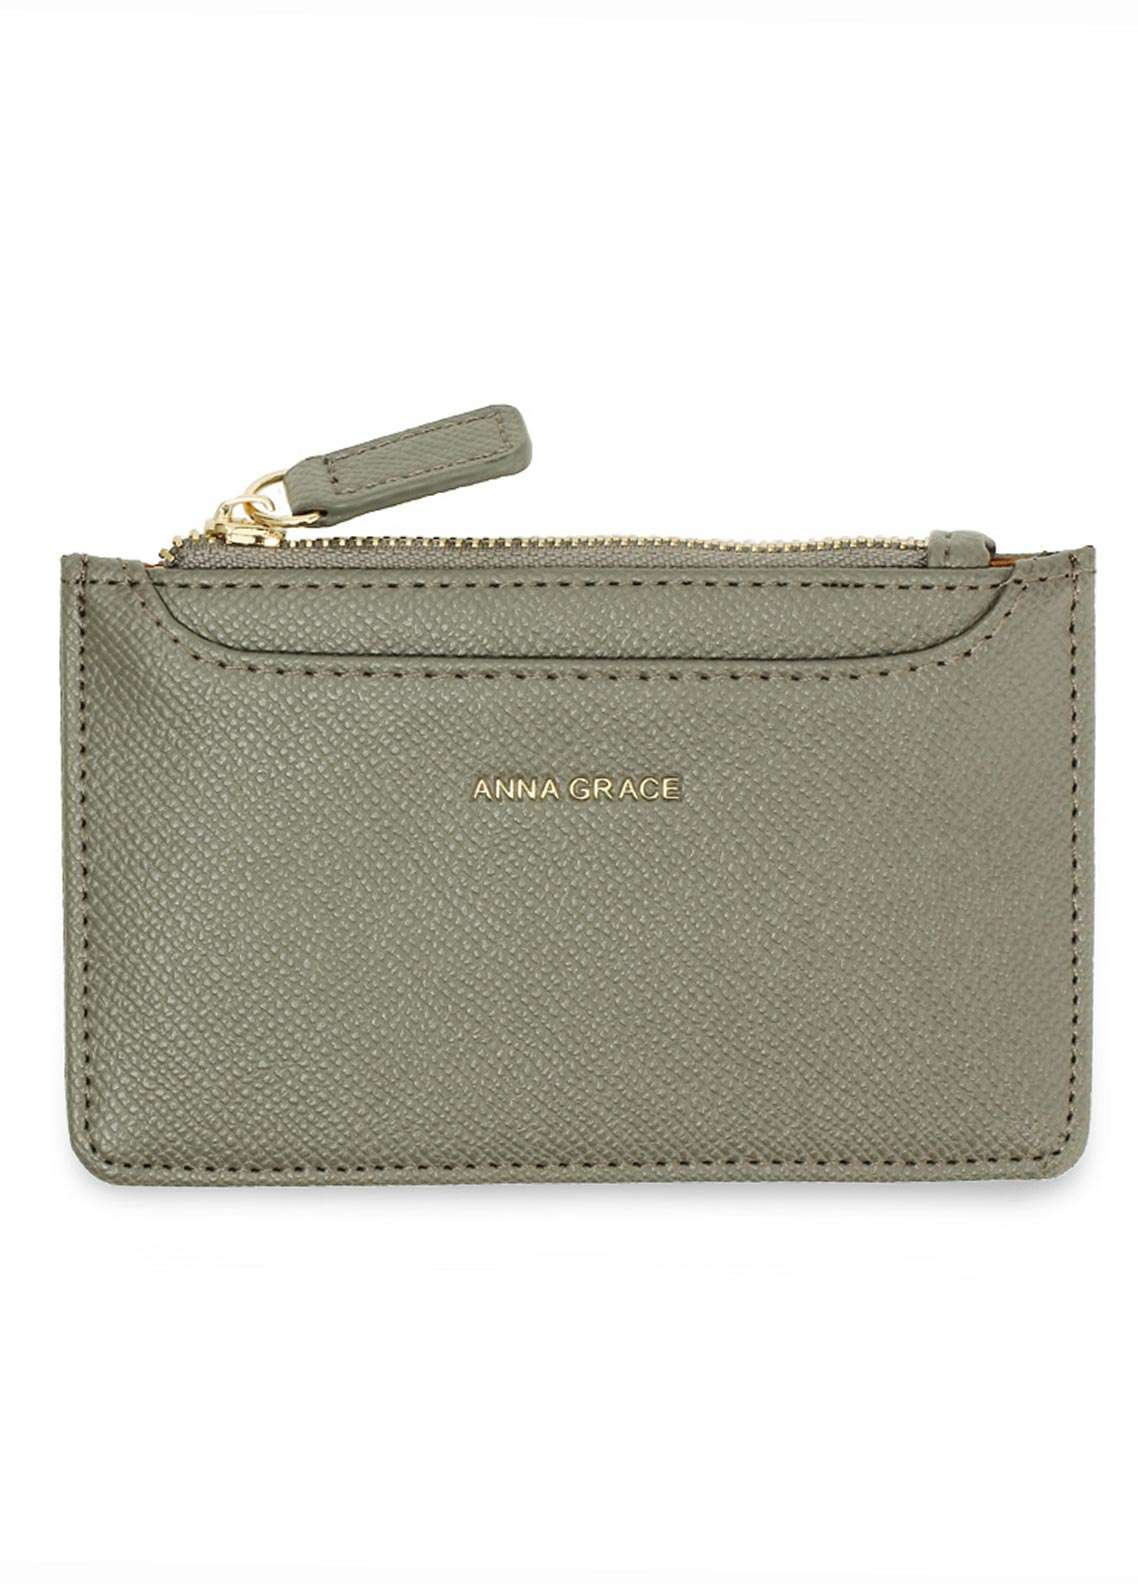 Anna Grace London Faux Leather Pouch   for Women  Grey with Rugged Texture